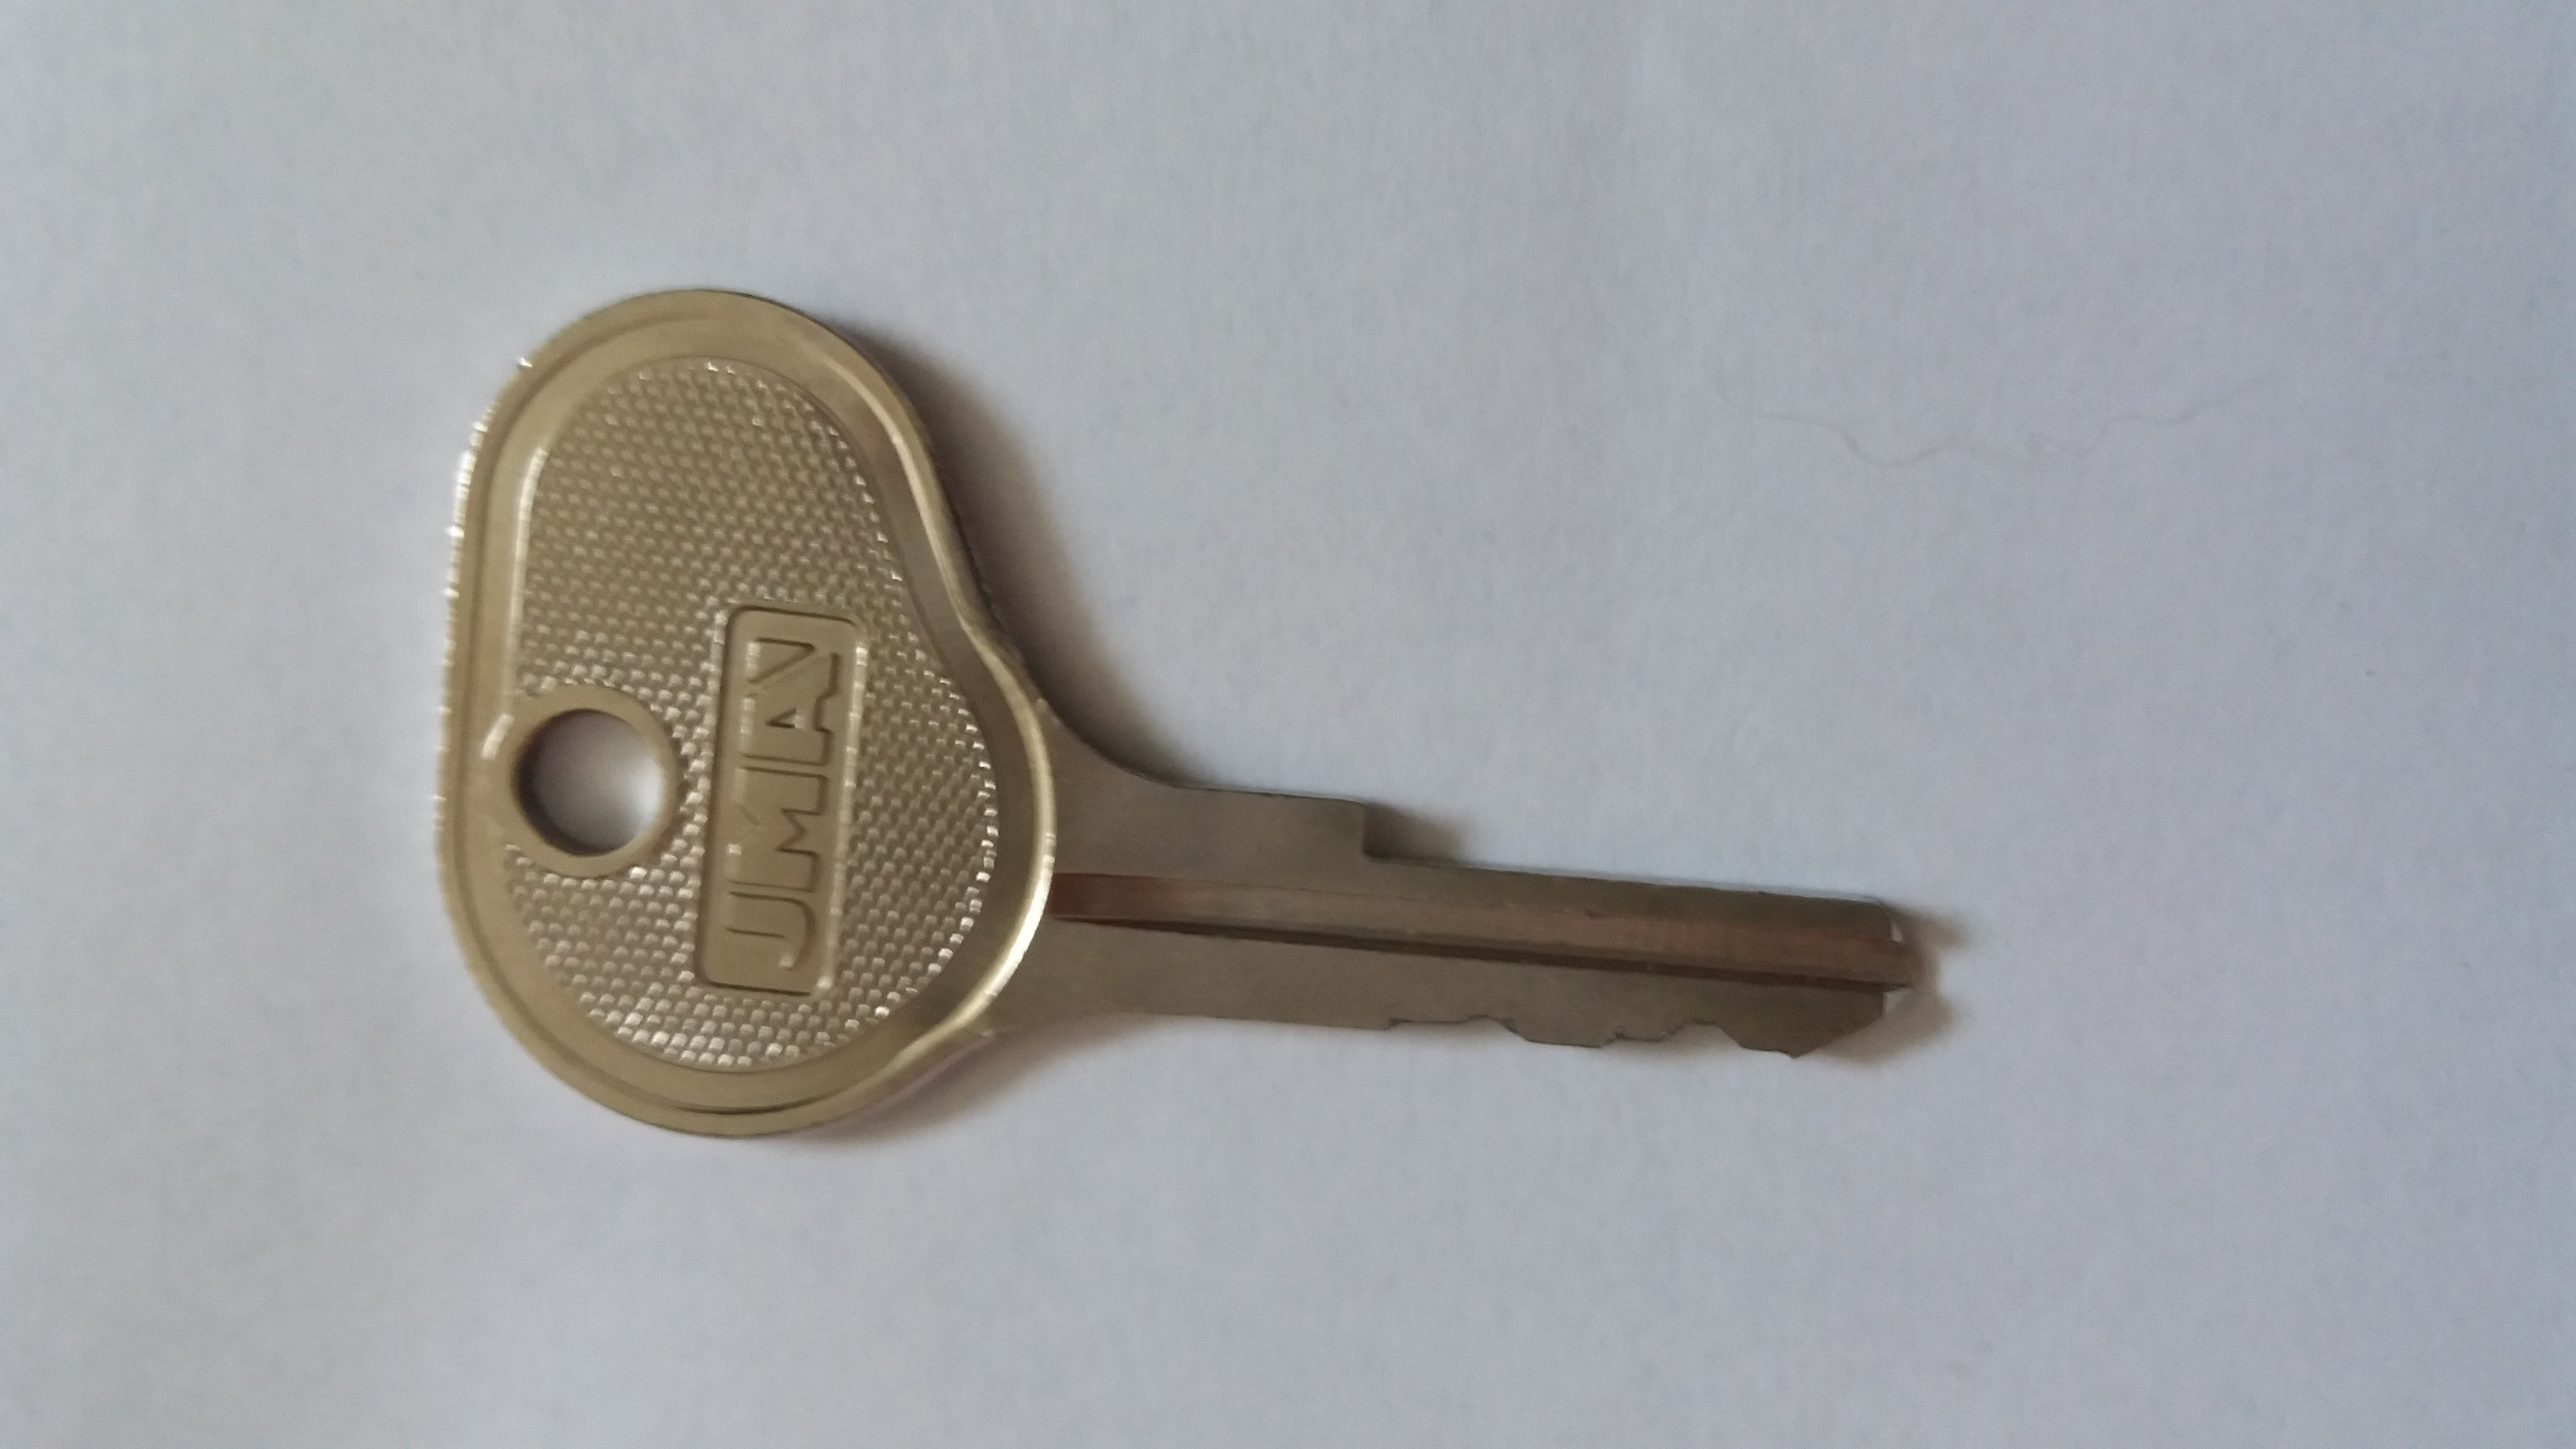 Replacement Toyota Forklift Key Old Style Toyota Forklift Key Brand New Ebay